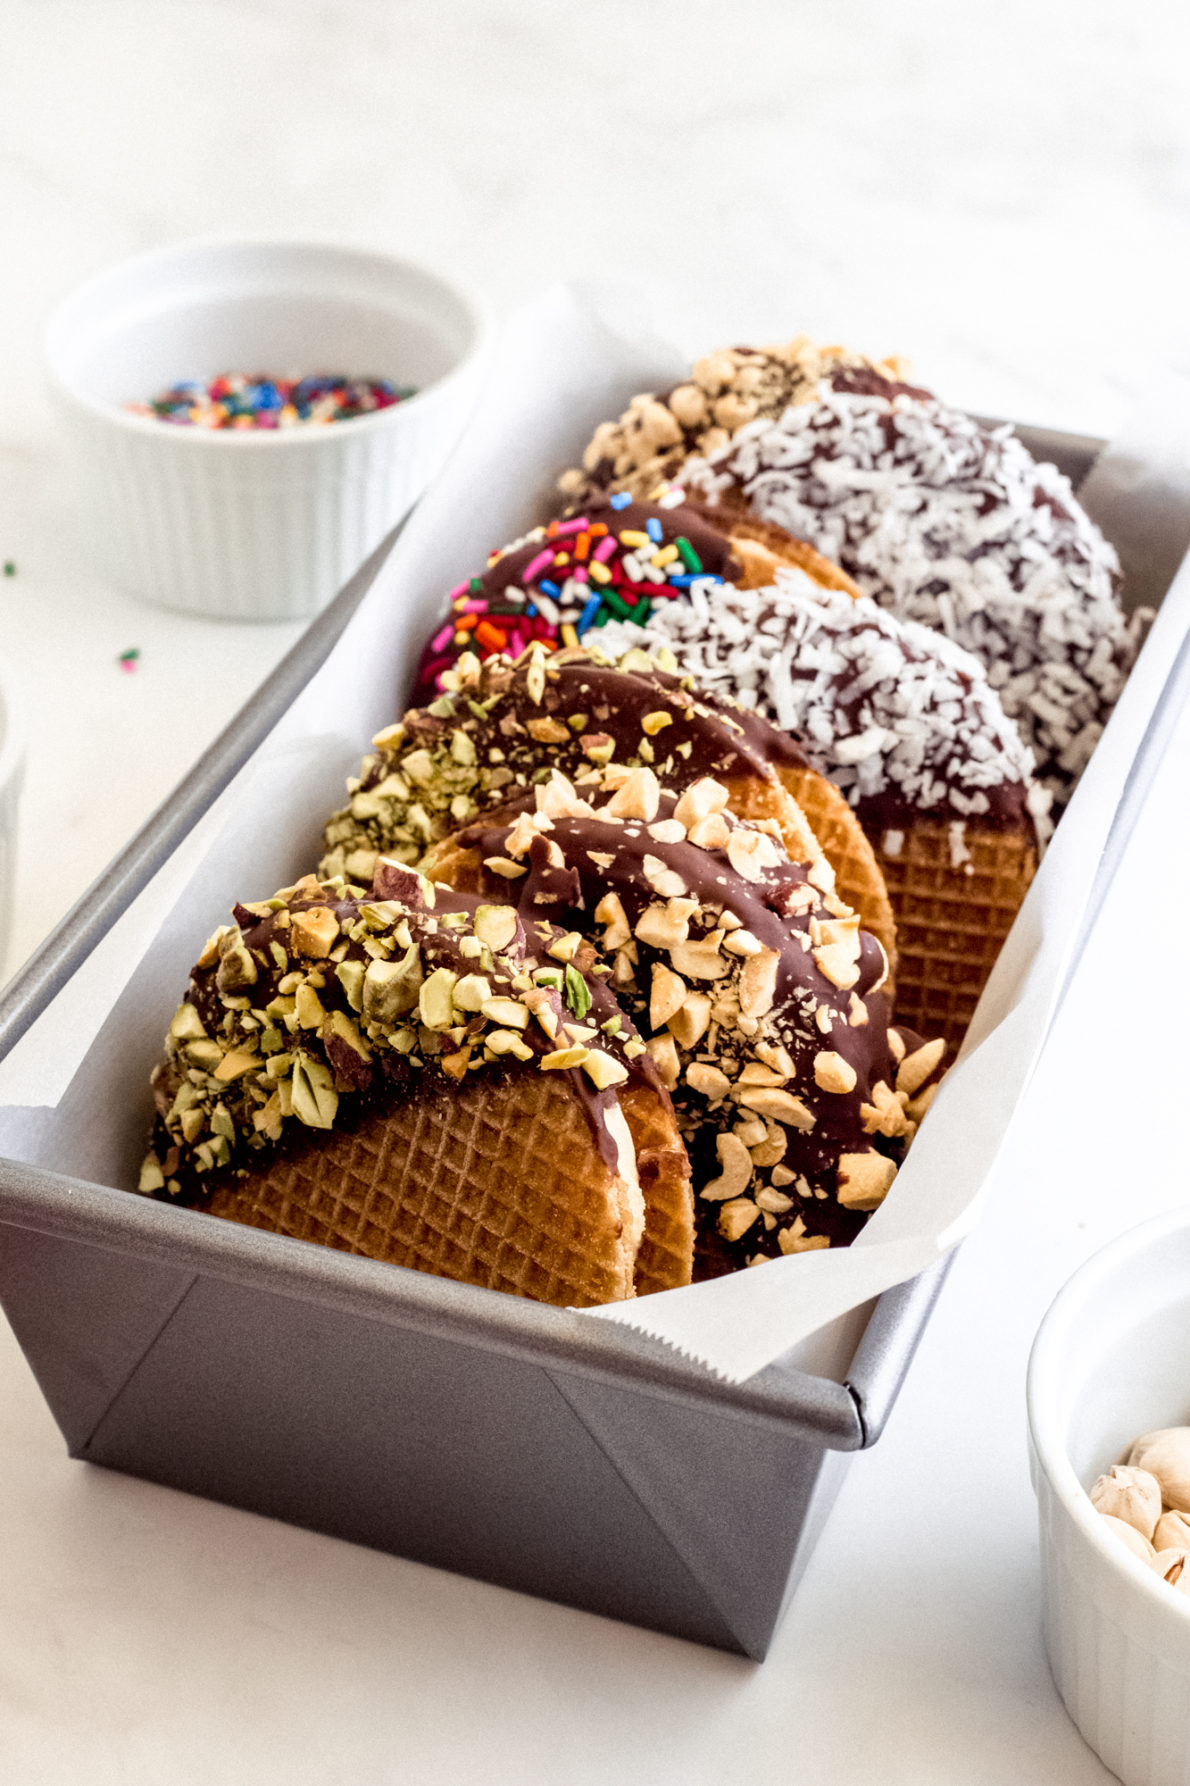 A loaf pan filled with stroopwafel ice cream sandwiches.